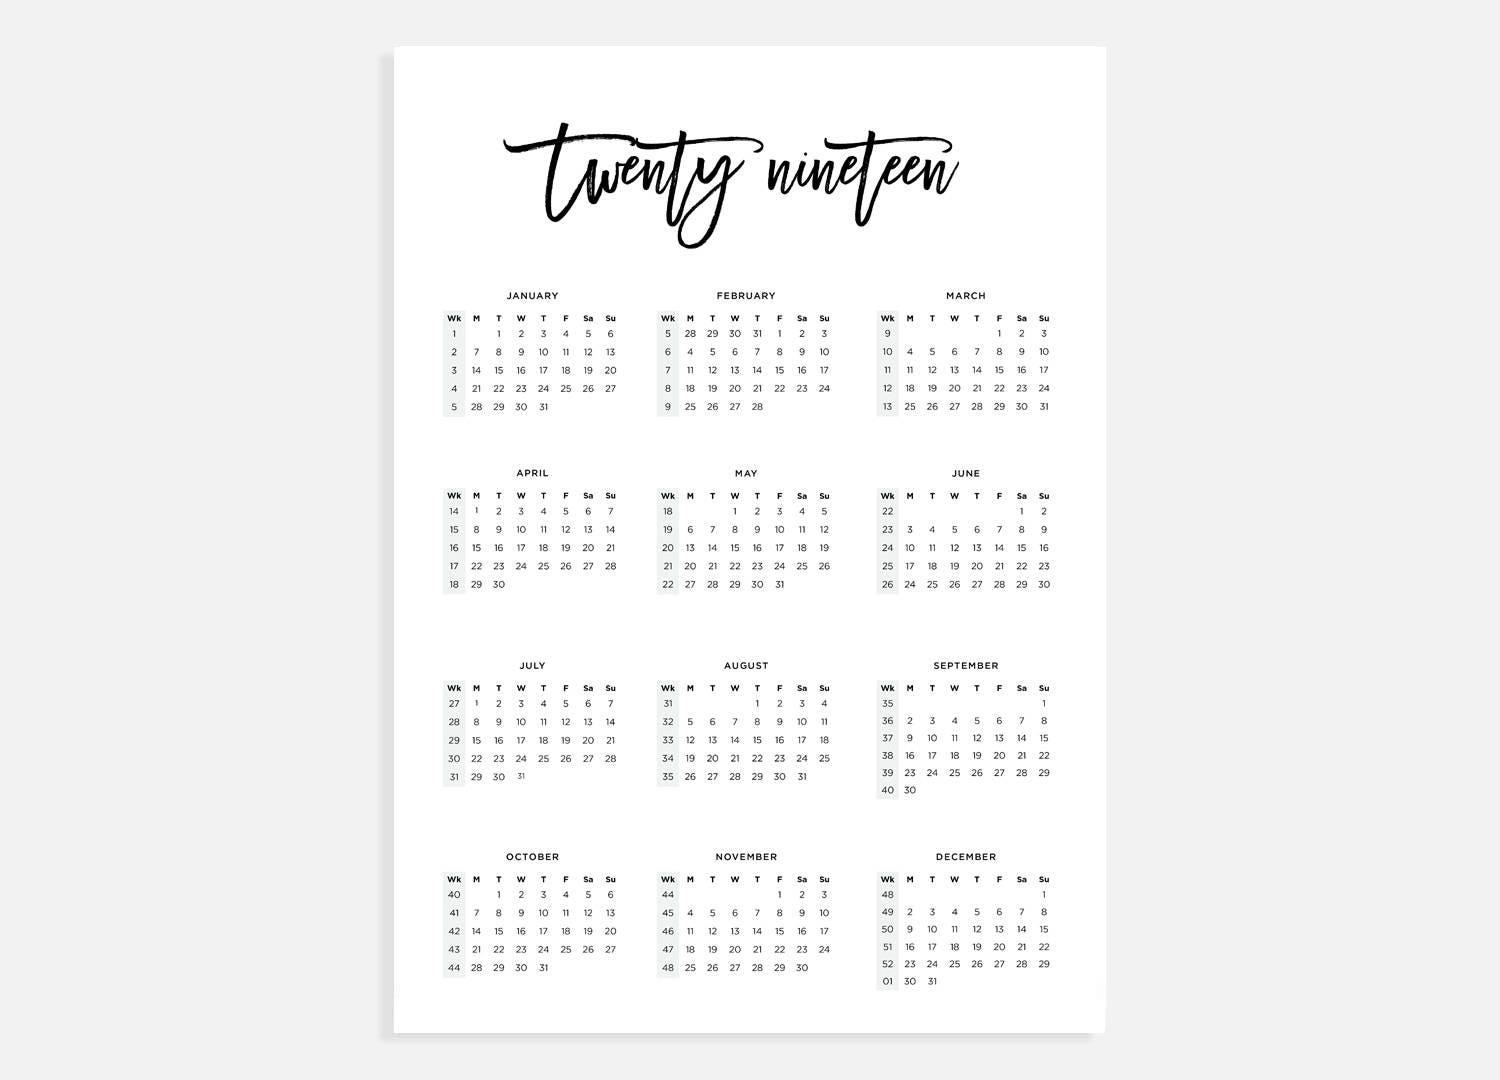 2019 Calendar A3 Calendar with week numbers 2019 Year